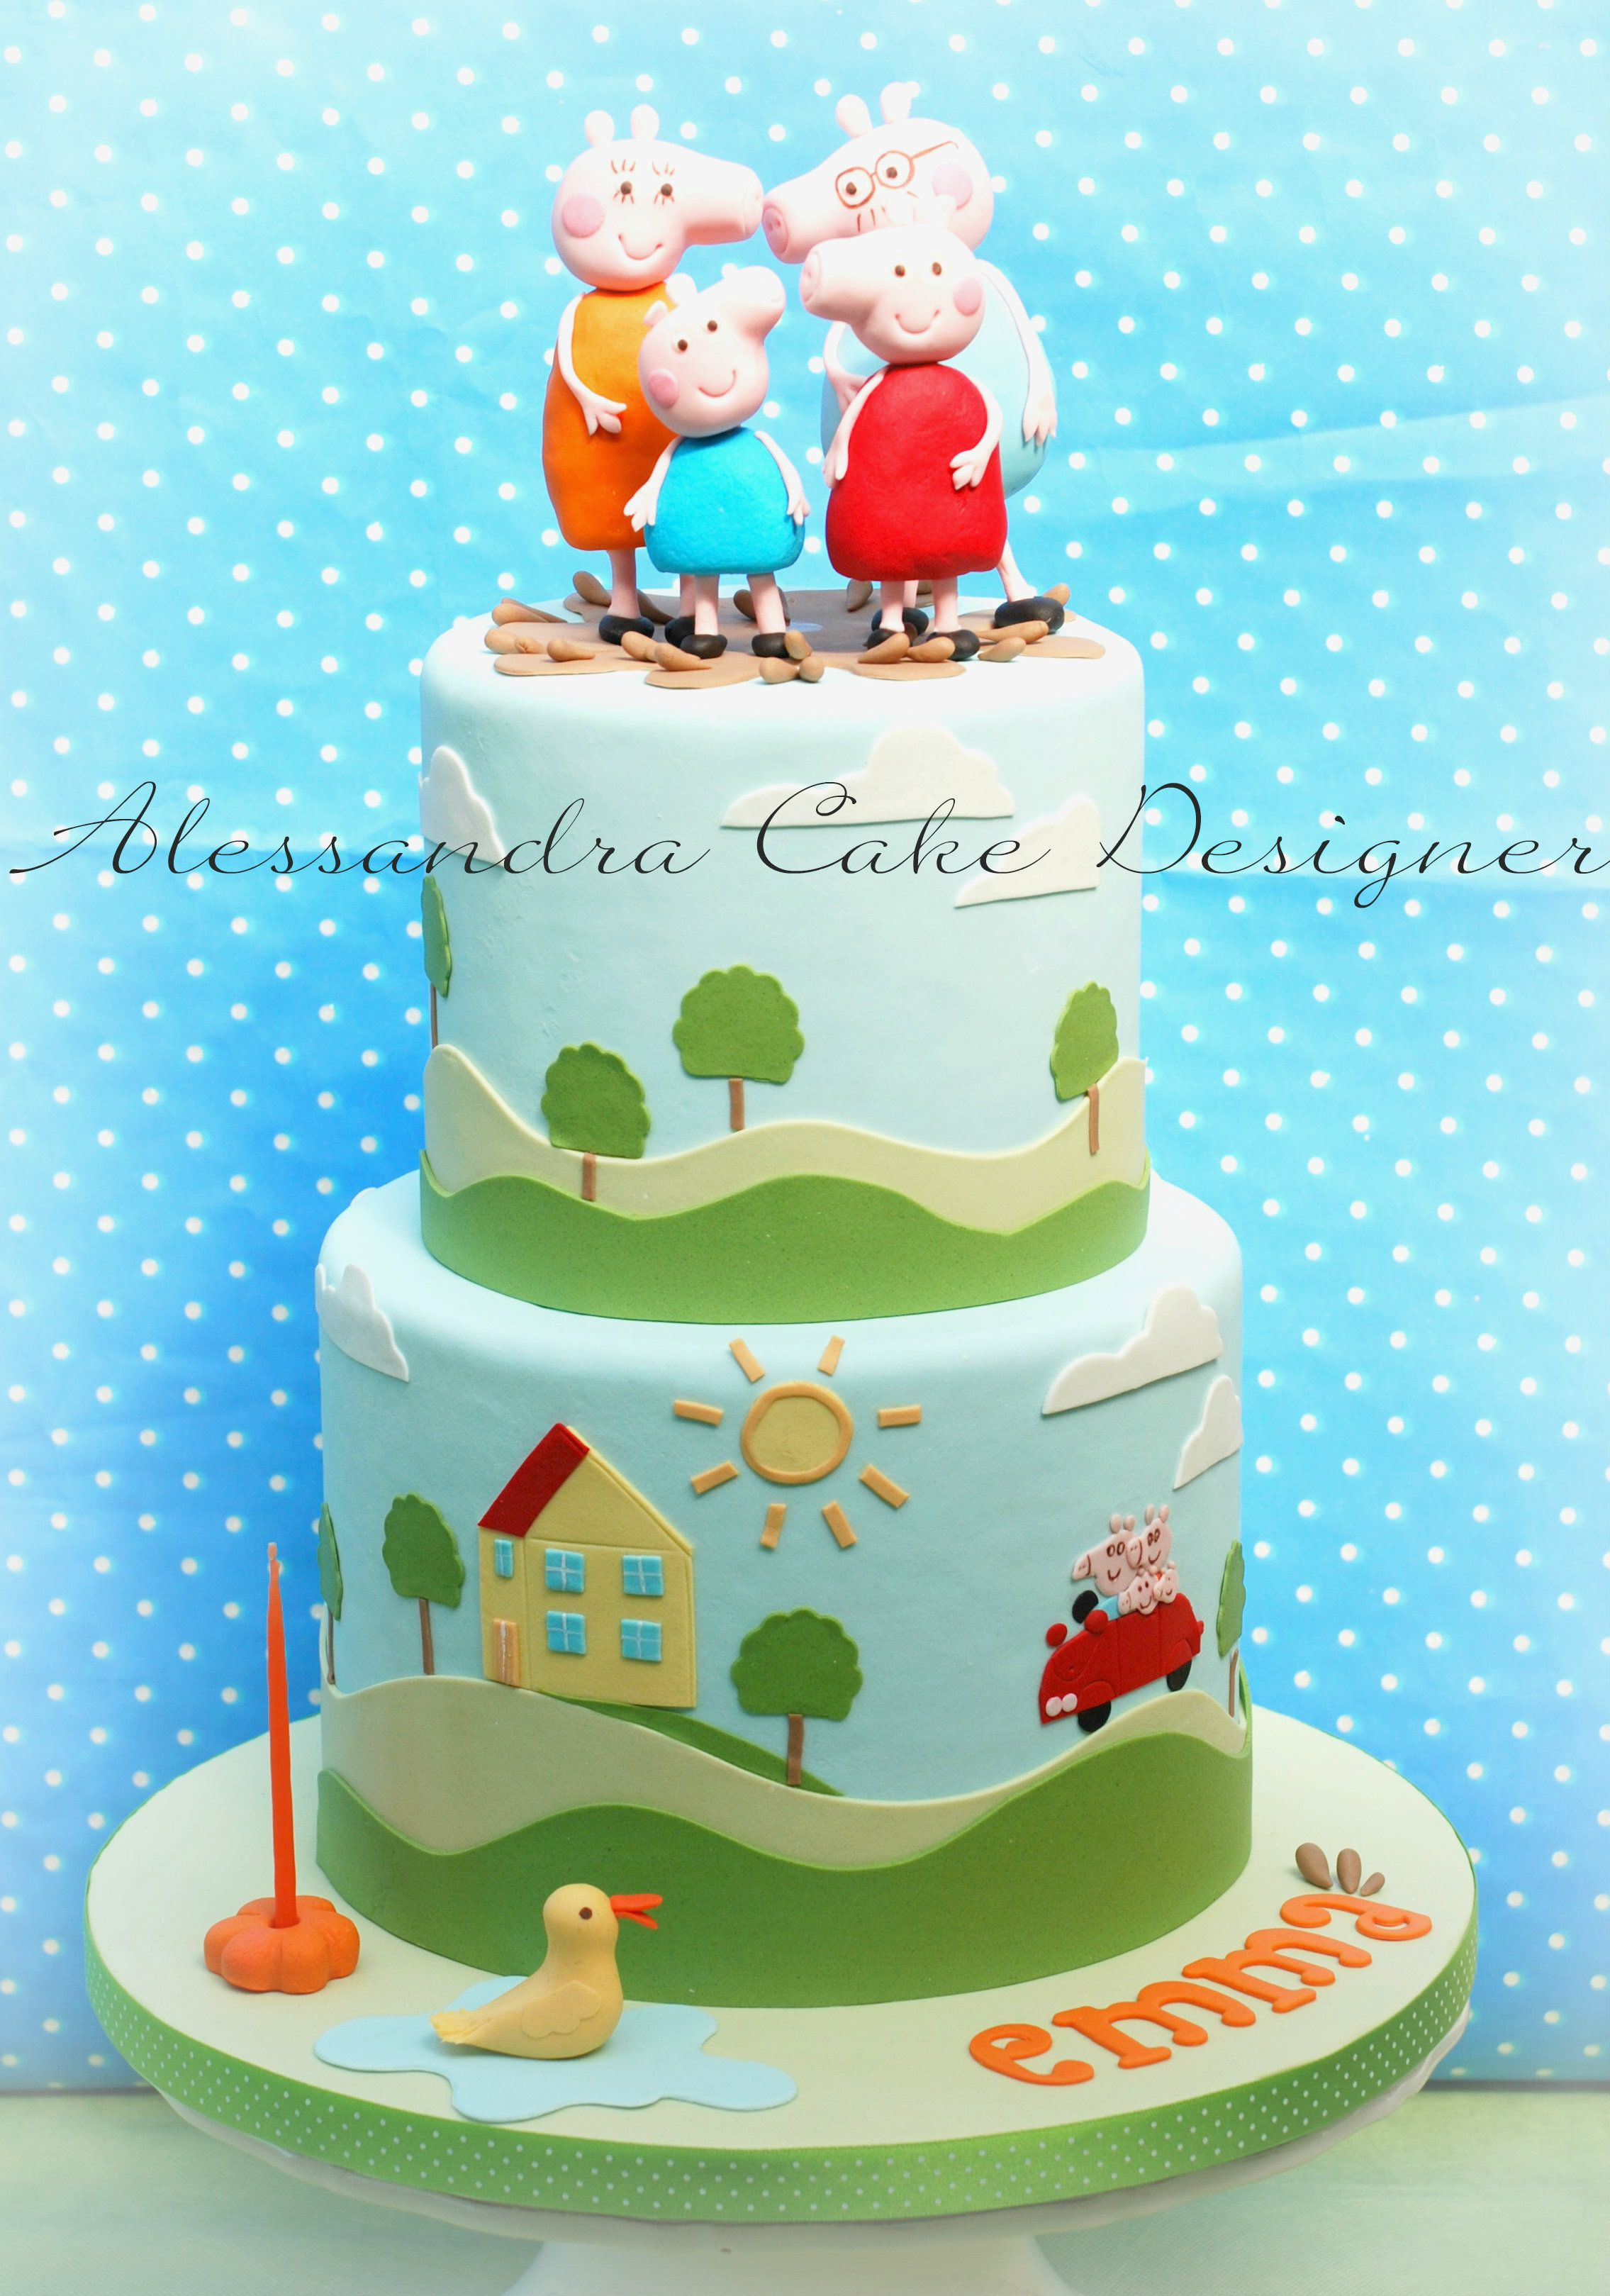 Cuisine Peppa Pig Peppa Pig Cake Peppa Pig Cakes Peppa Pig Cake Pig Party